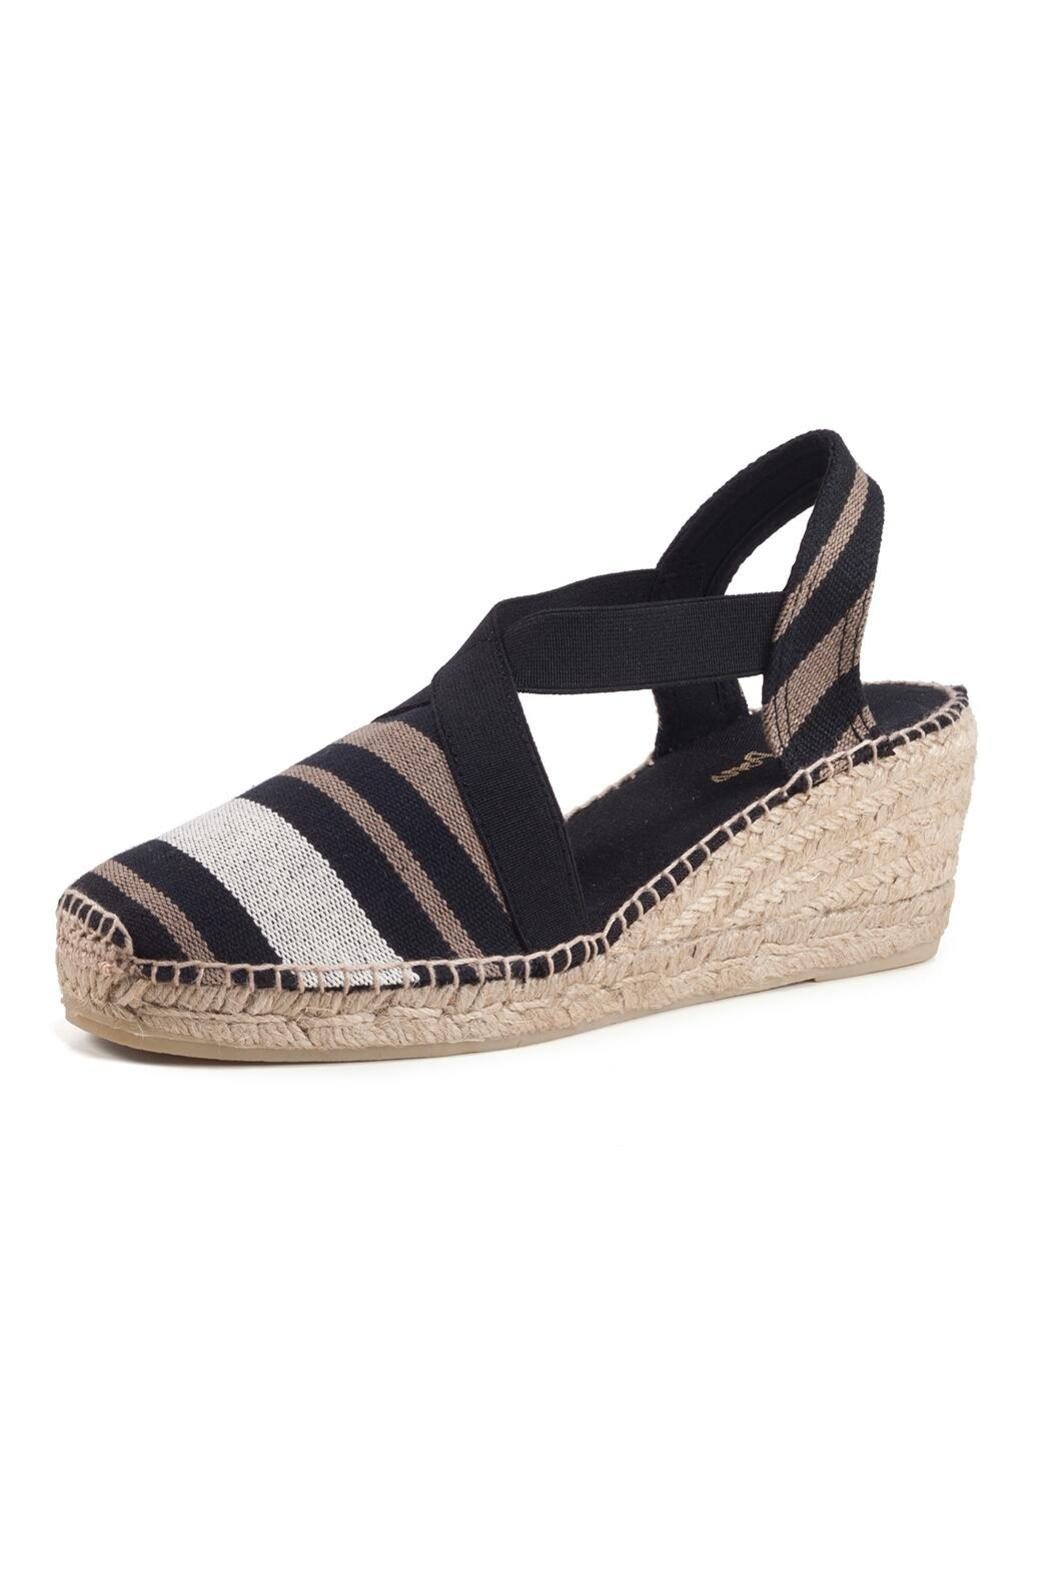 3b108d5ea64 Toni Pons Tarbes Striped Espadrille from Israel by BRONXY — Shoptiques